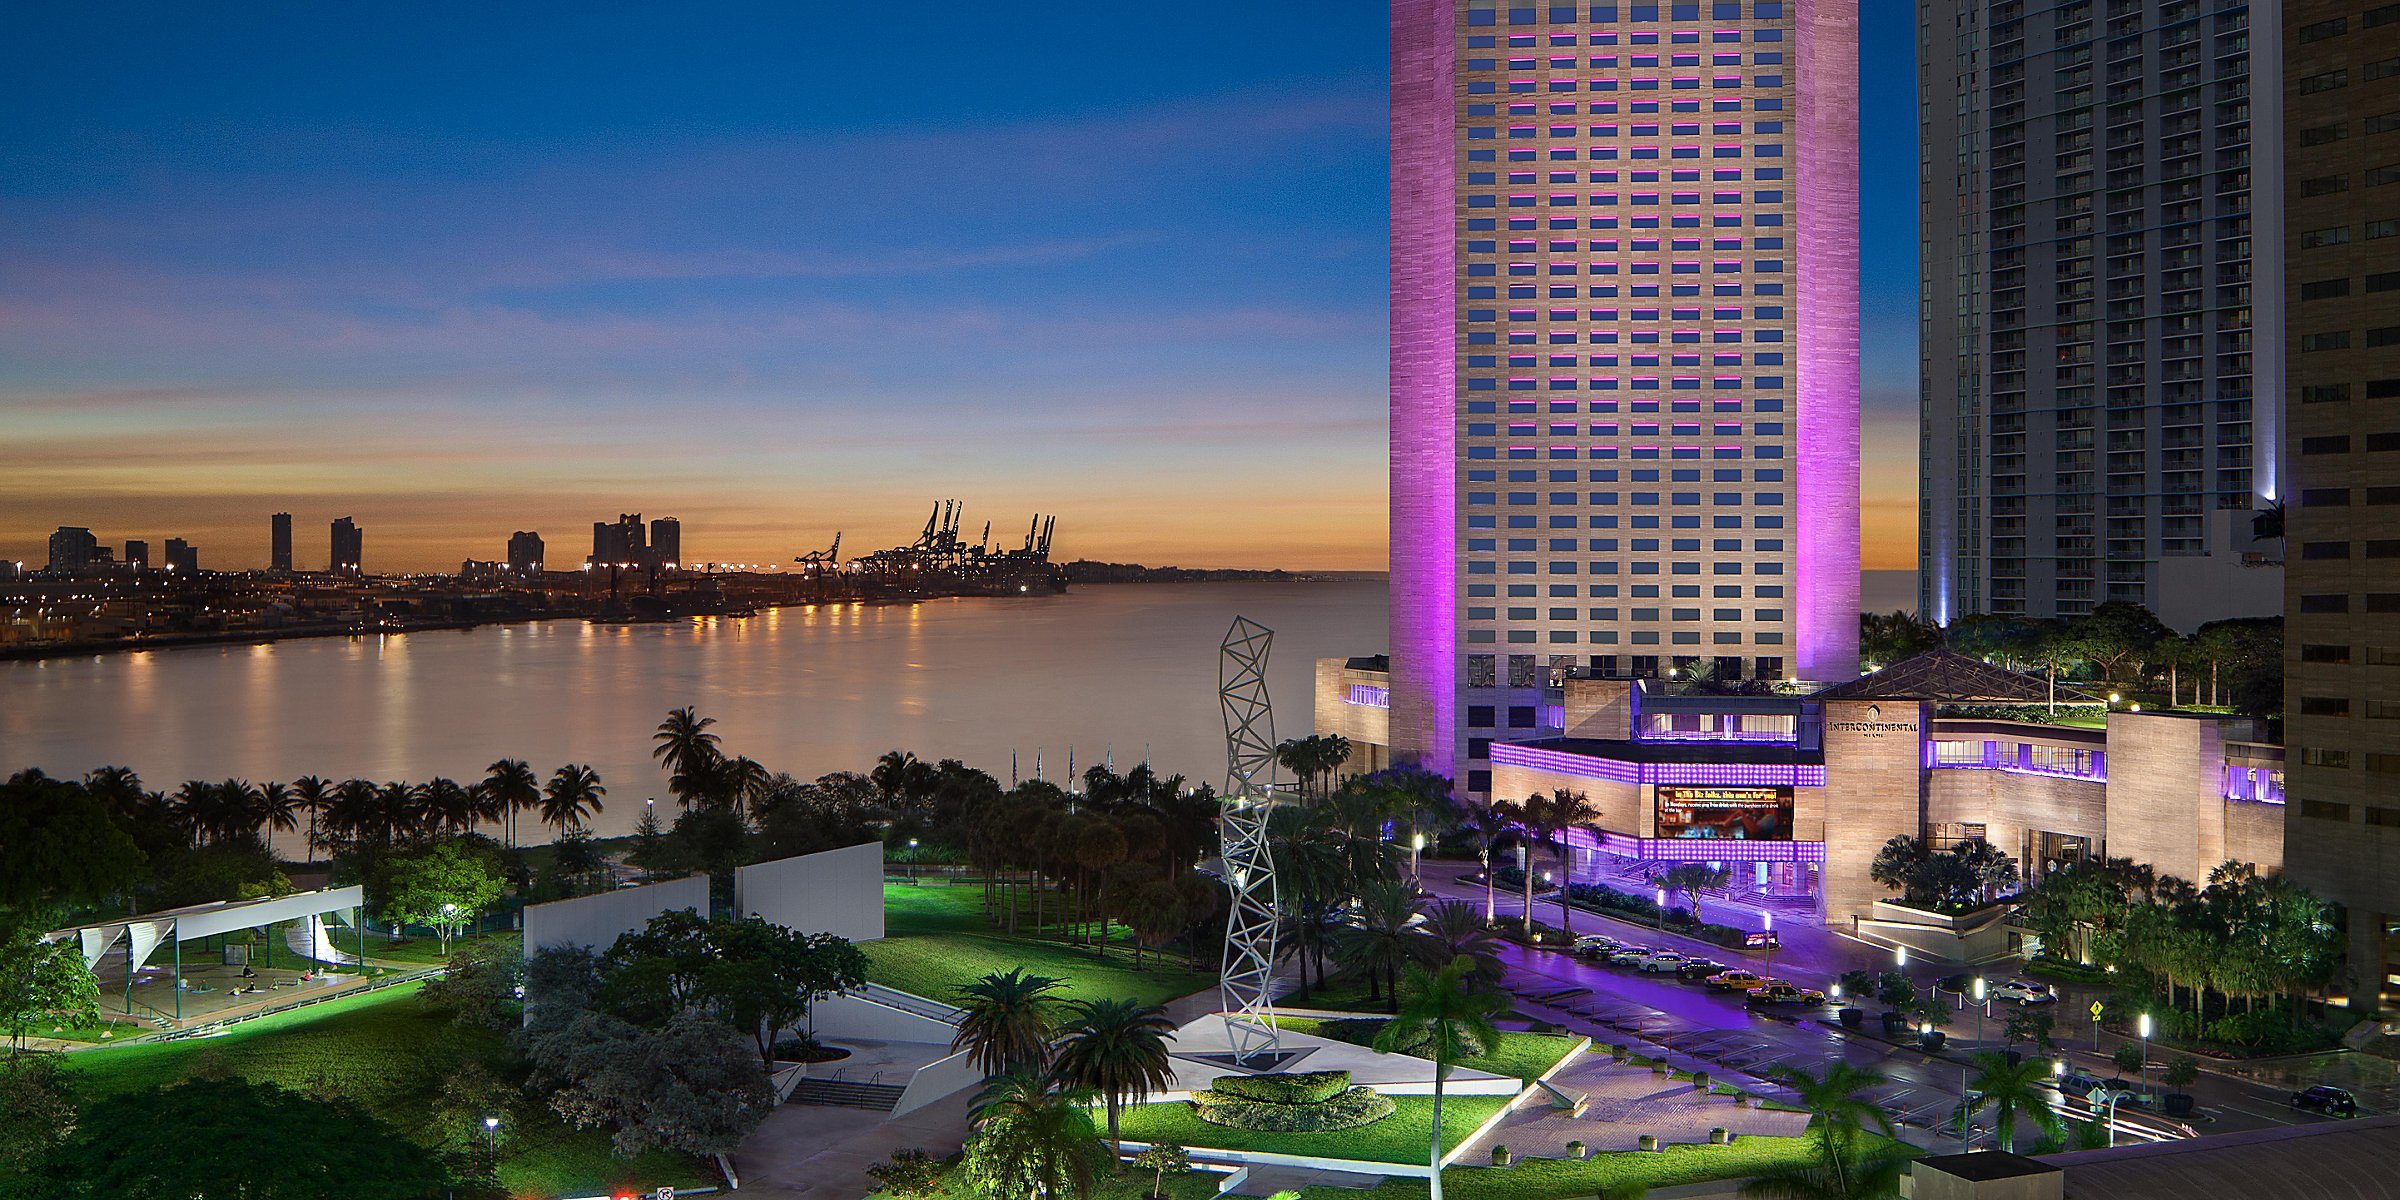 Downtown Miami Luxury Hotels on Biscayne Bay | InterContinental Miami